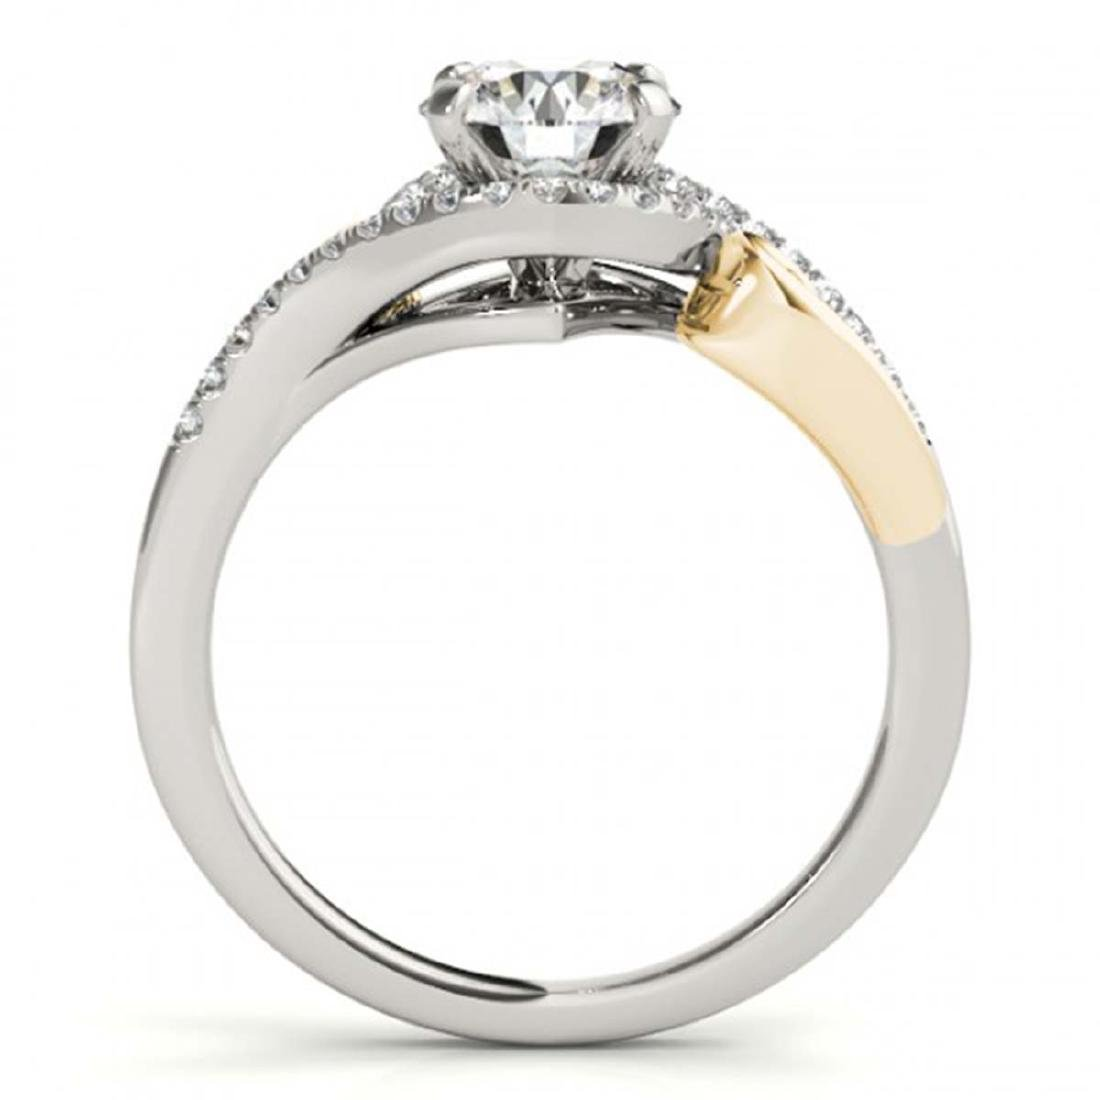 1 ctw VS/SI Diamond Solitaire Halo Ring 18K White & - 2